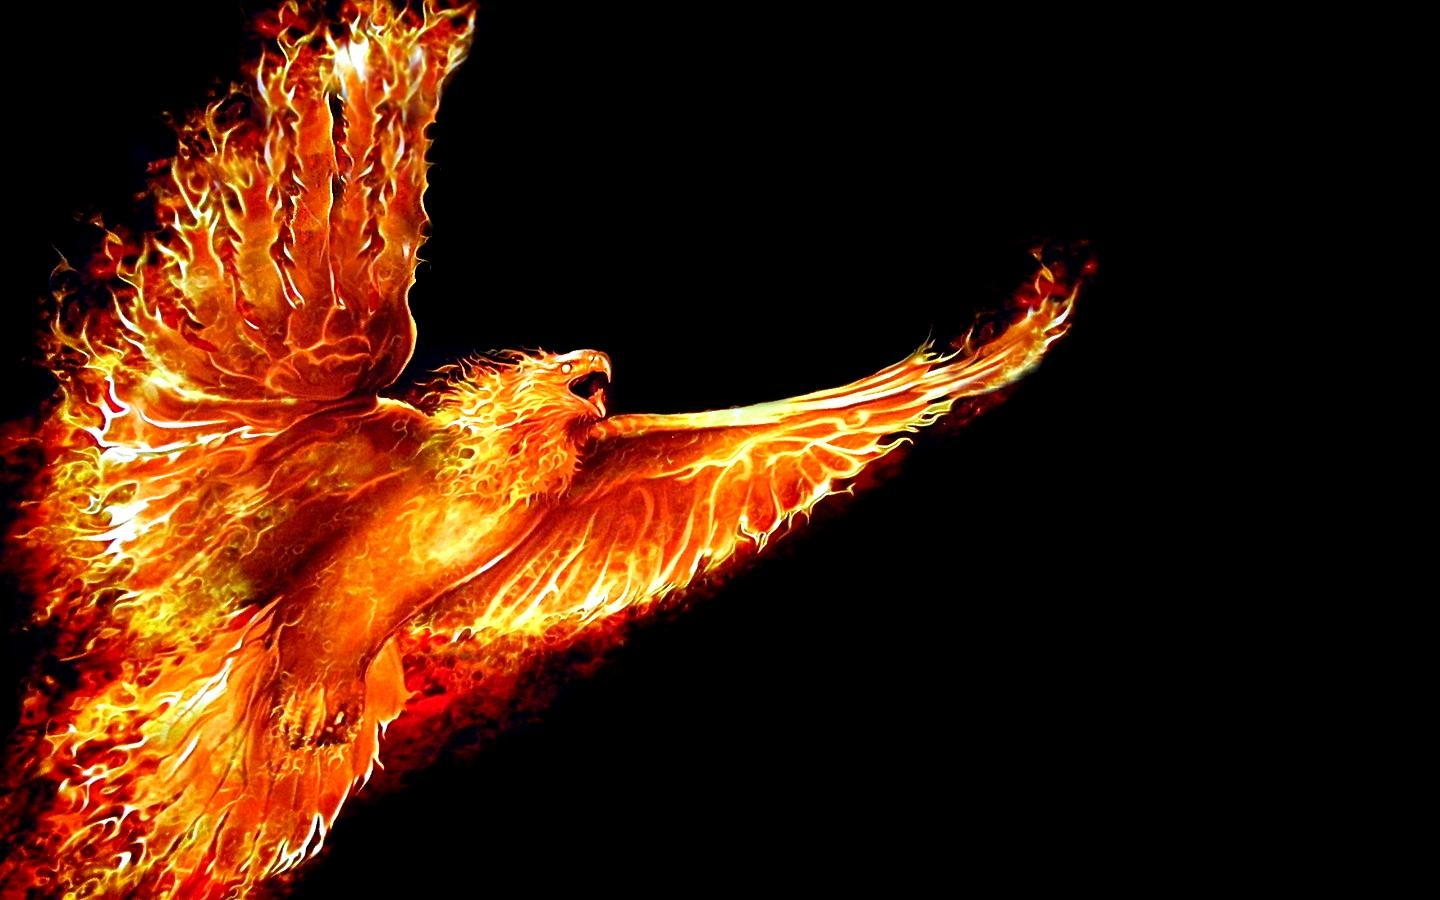 How groovy is this Phoenix?  If I ever put out an album...